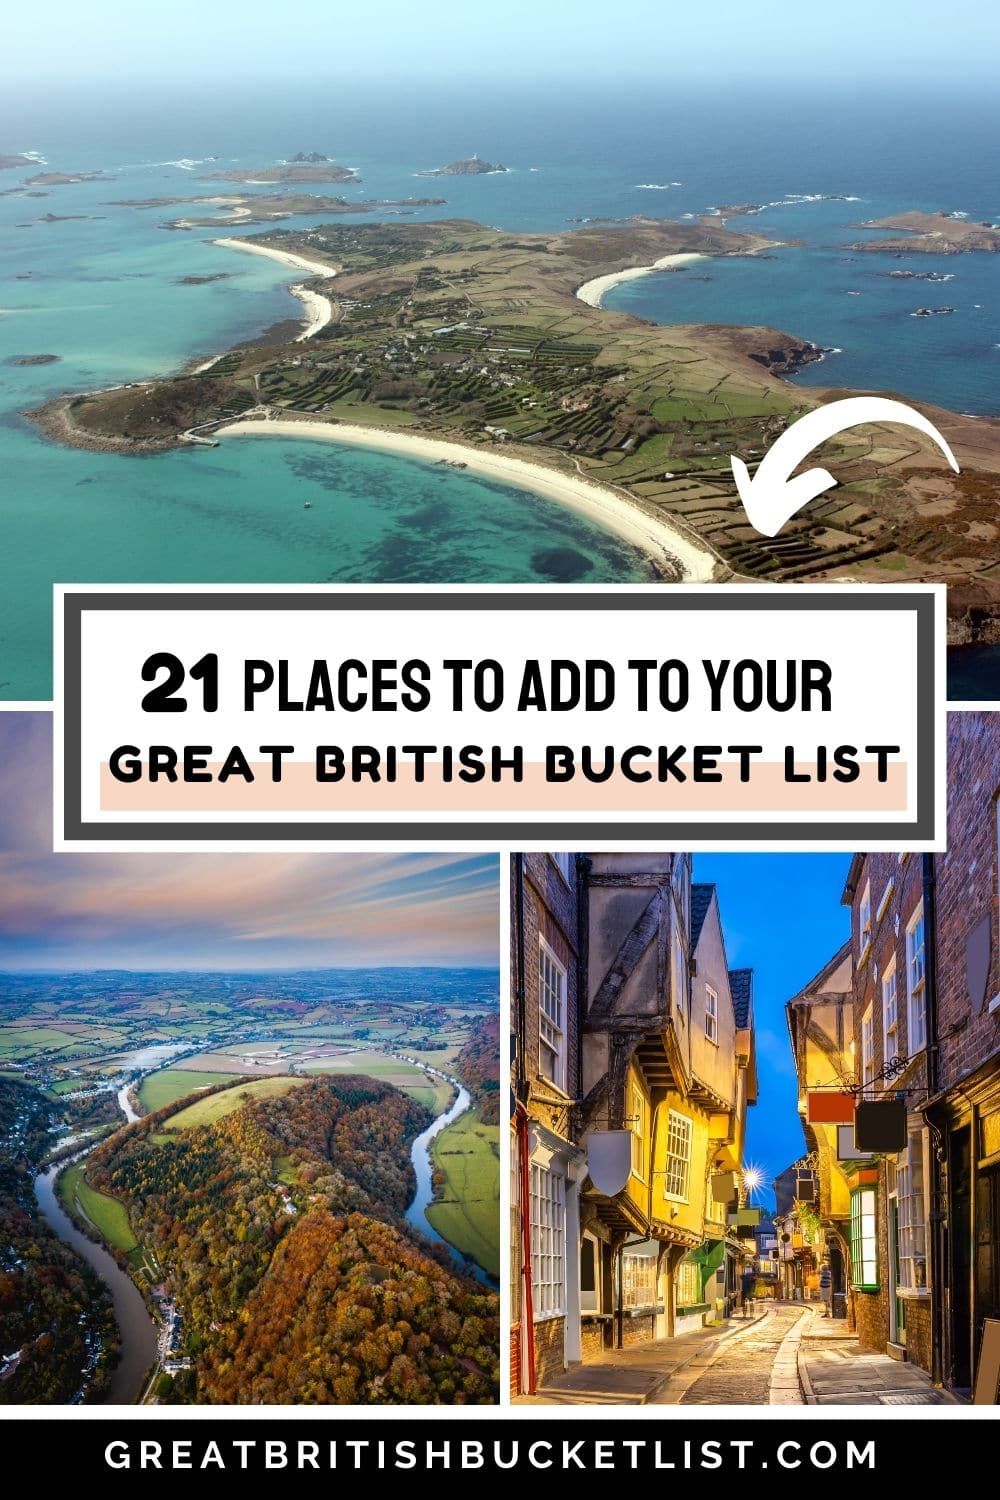 21 Places To Add To Your Great British Bucket List In 2021